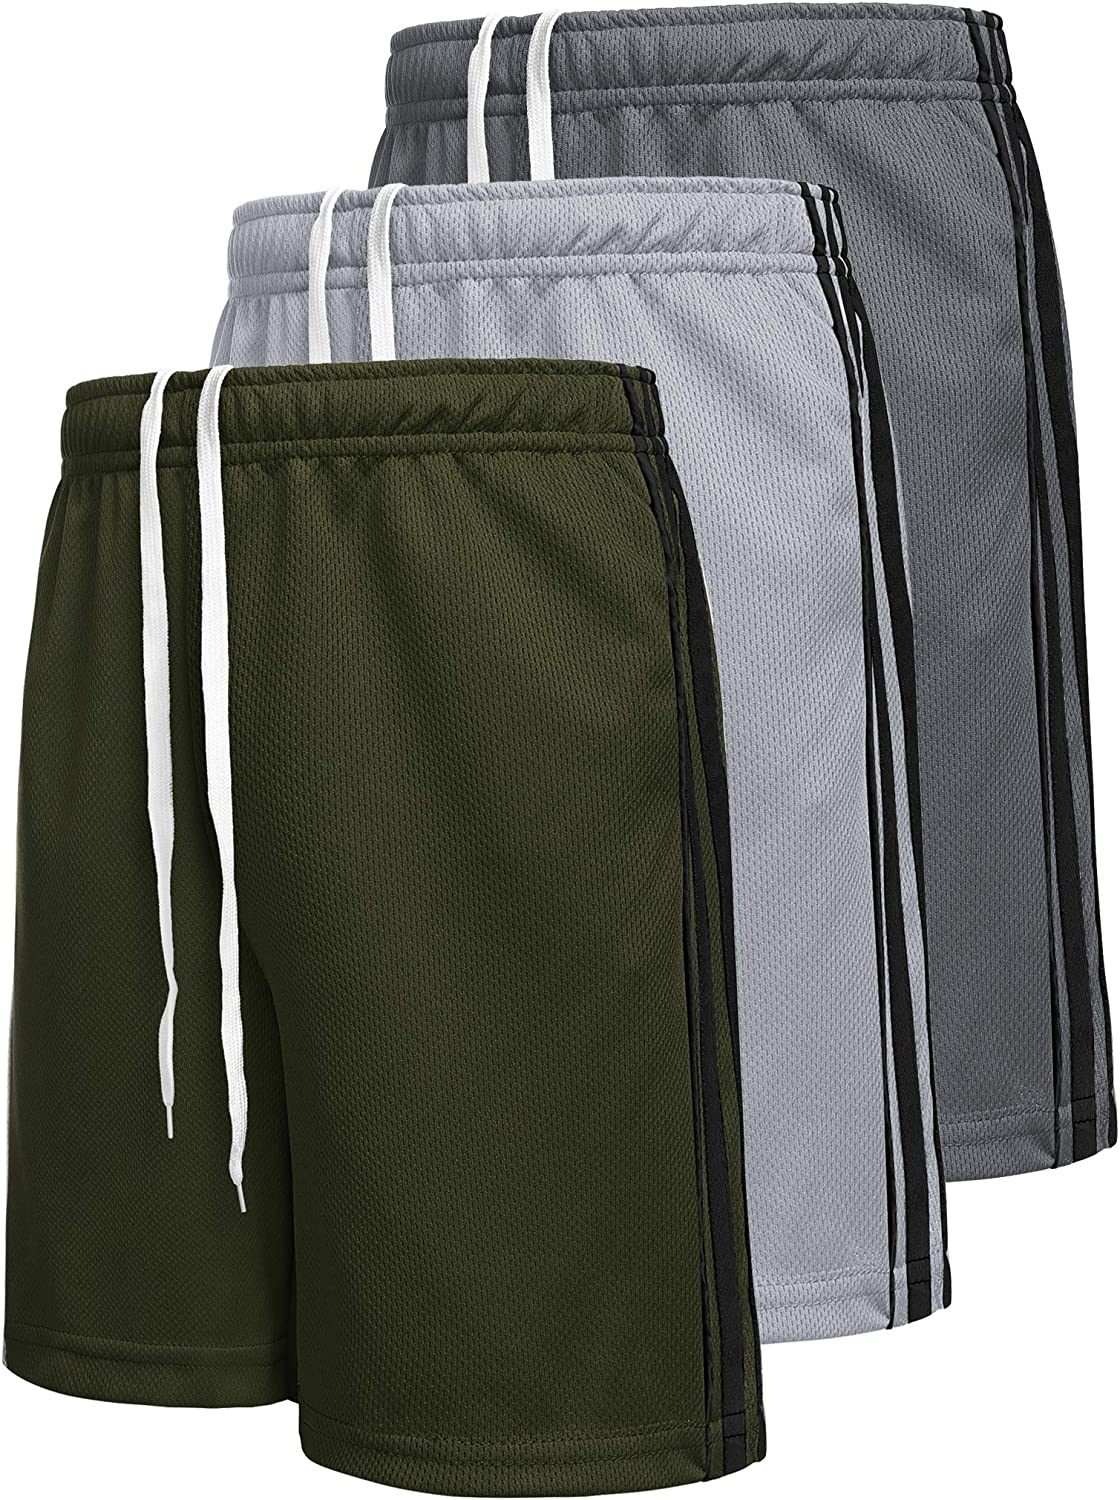 Boyoo Big Boys Youth 3 Pack Fast Dry Athletic Performance Shorts Mesh Active Basketball Shorts with Pockets: Clothing